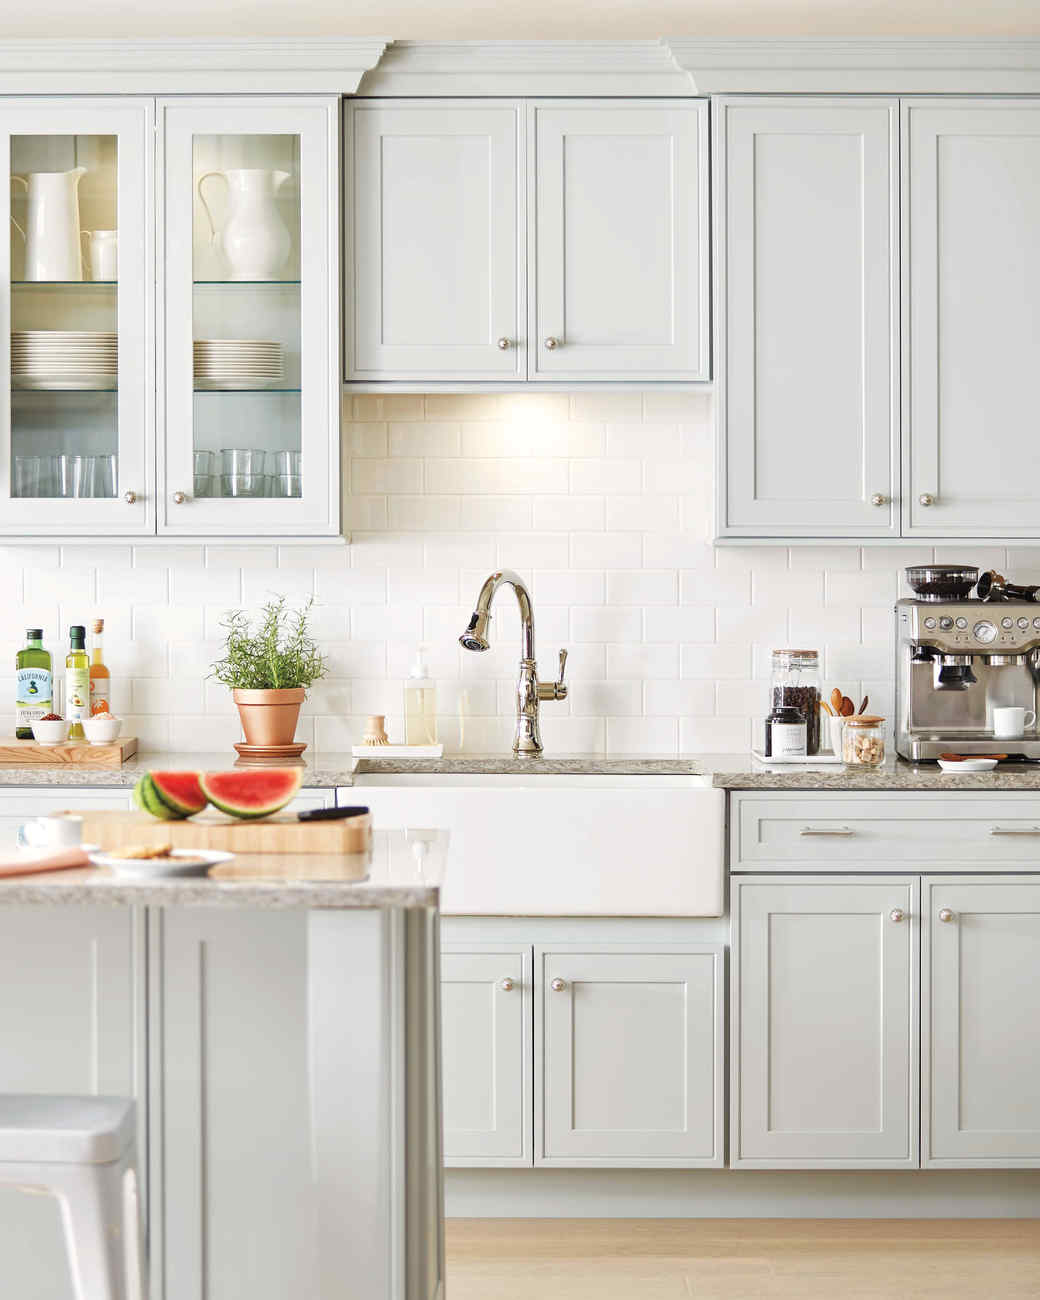 13 Common Kitchen Renovation Mistakes to Avoid